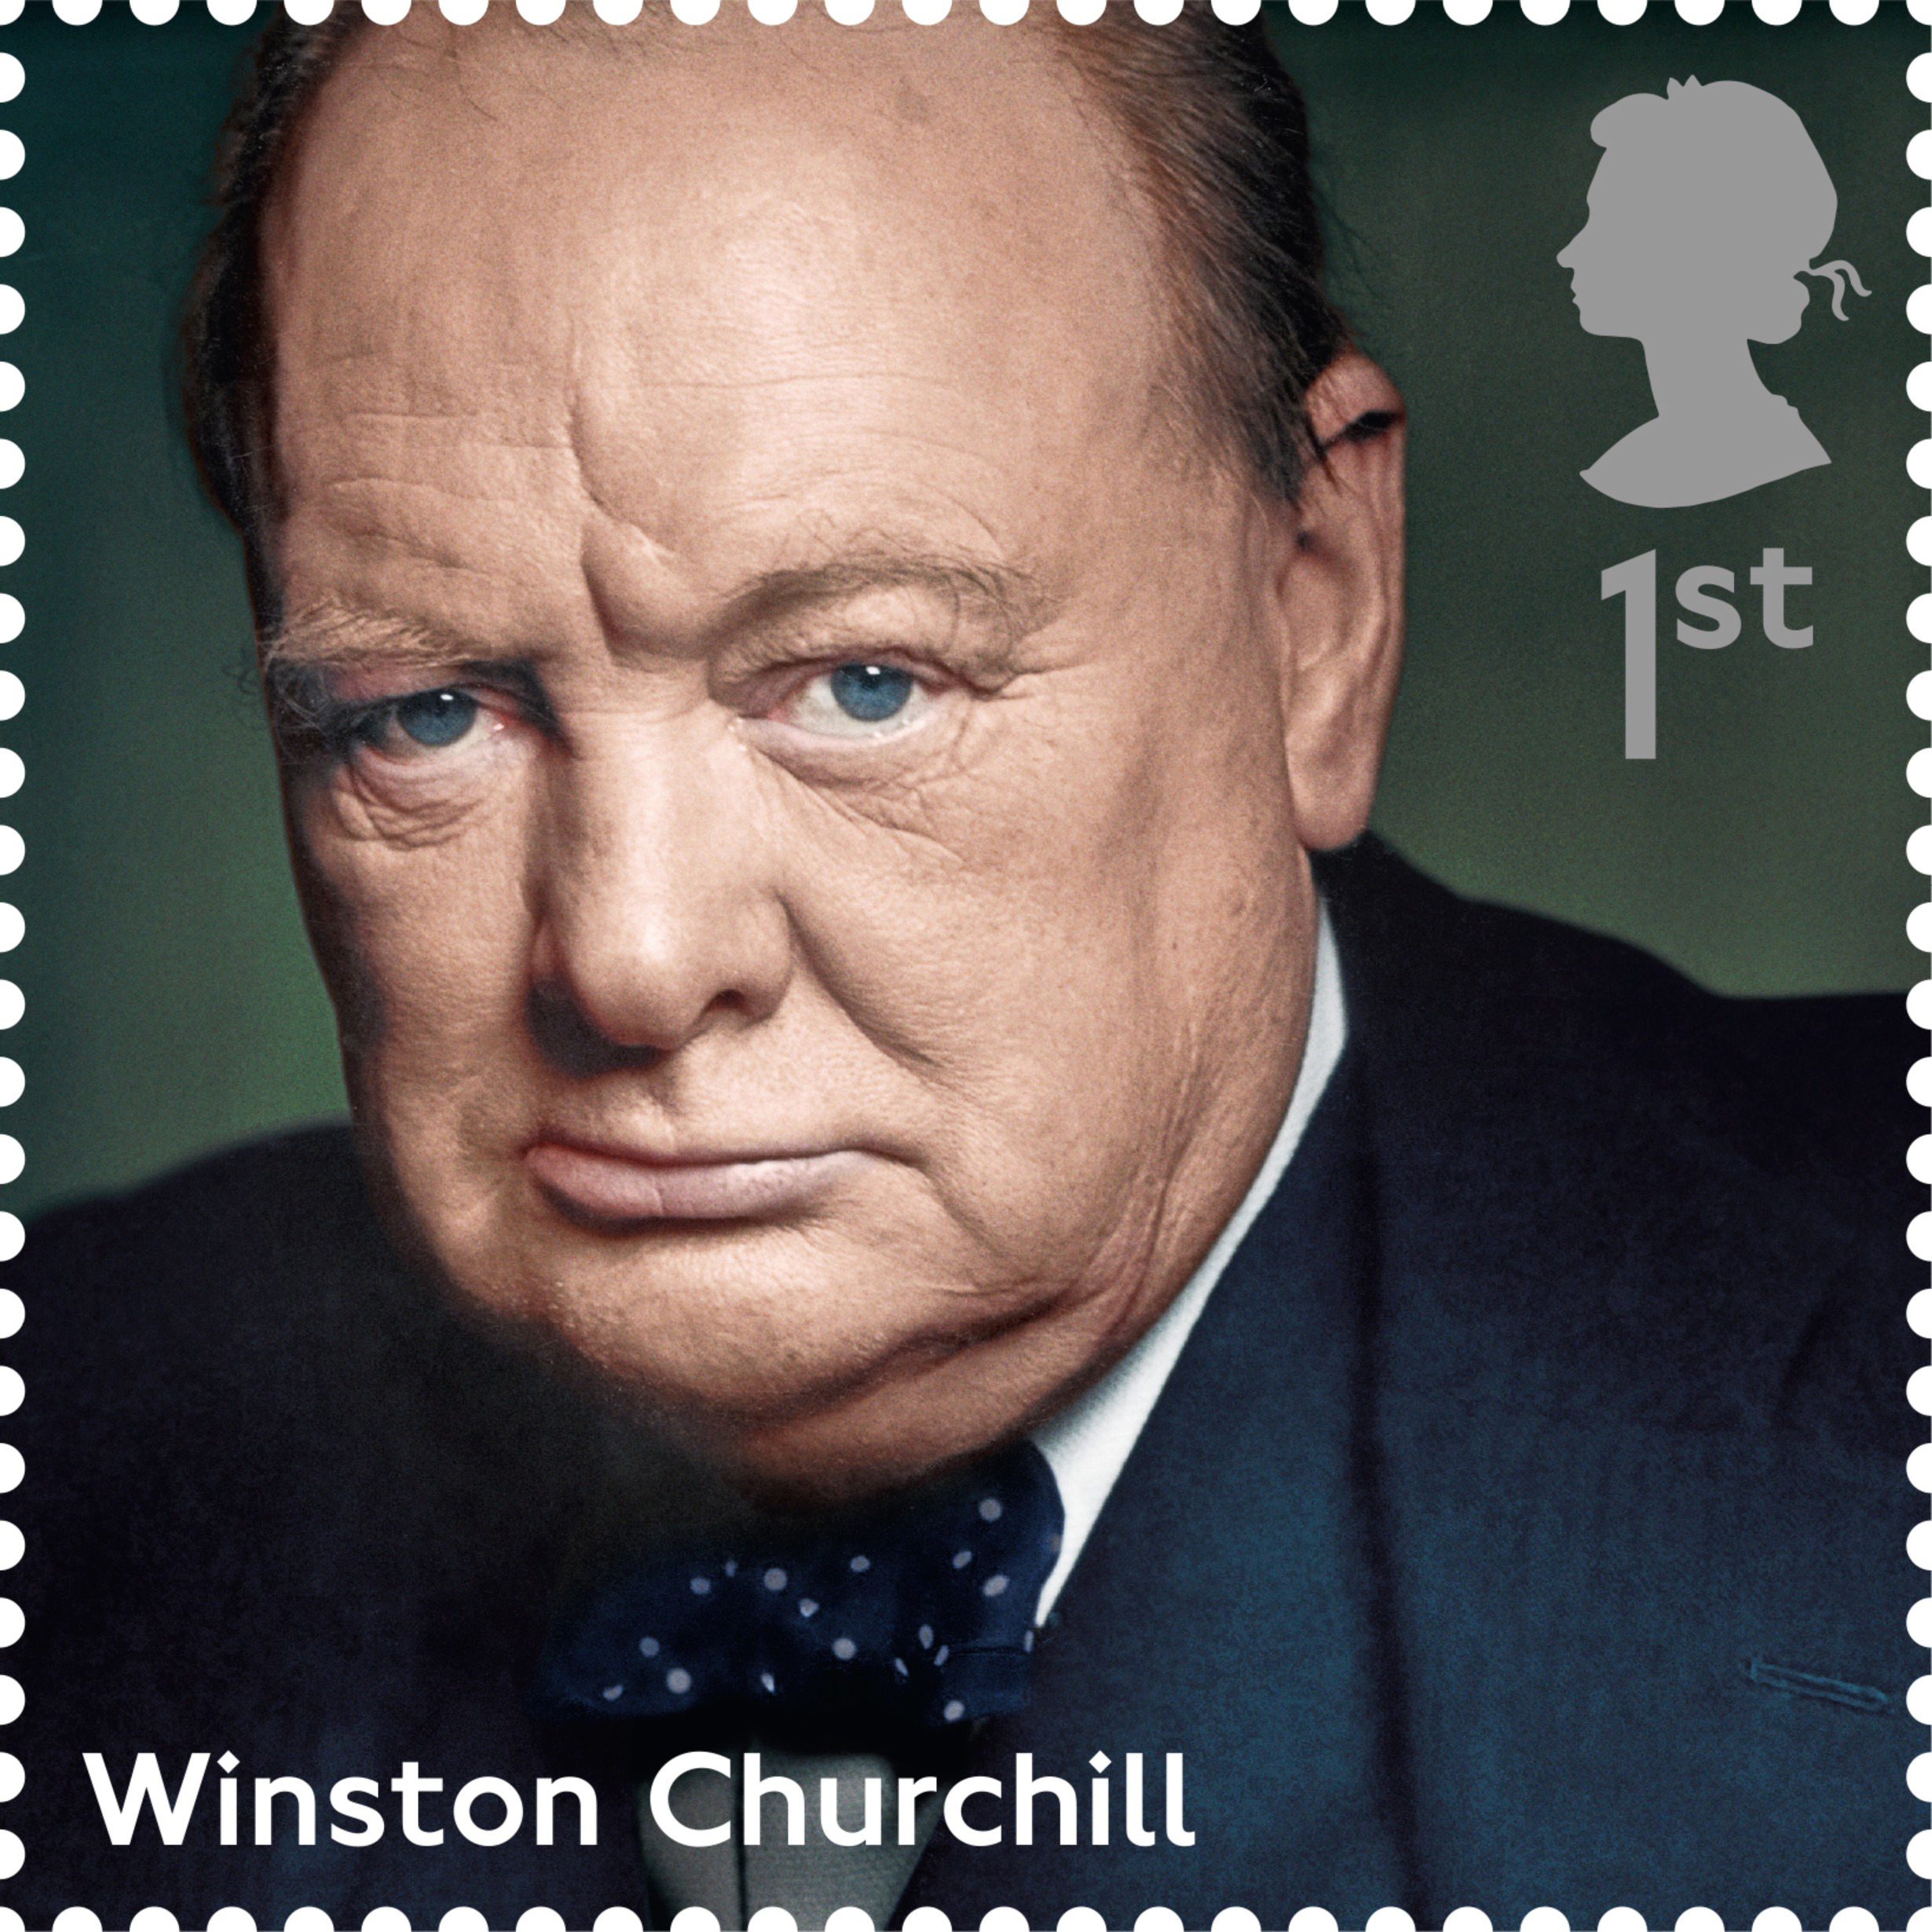 a biography of winston churchill prime minister of england Background winston churchill was born during 1874 in oxfordshire, england he attended the royal military college, sandhurst where he had an undistinguished academic career.